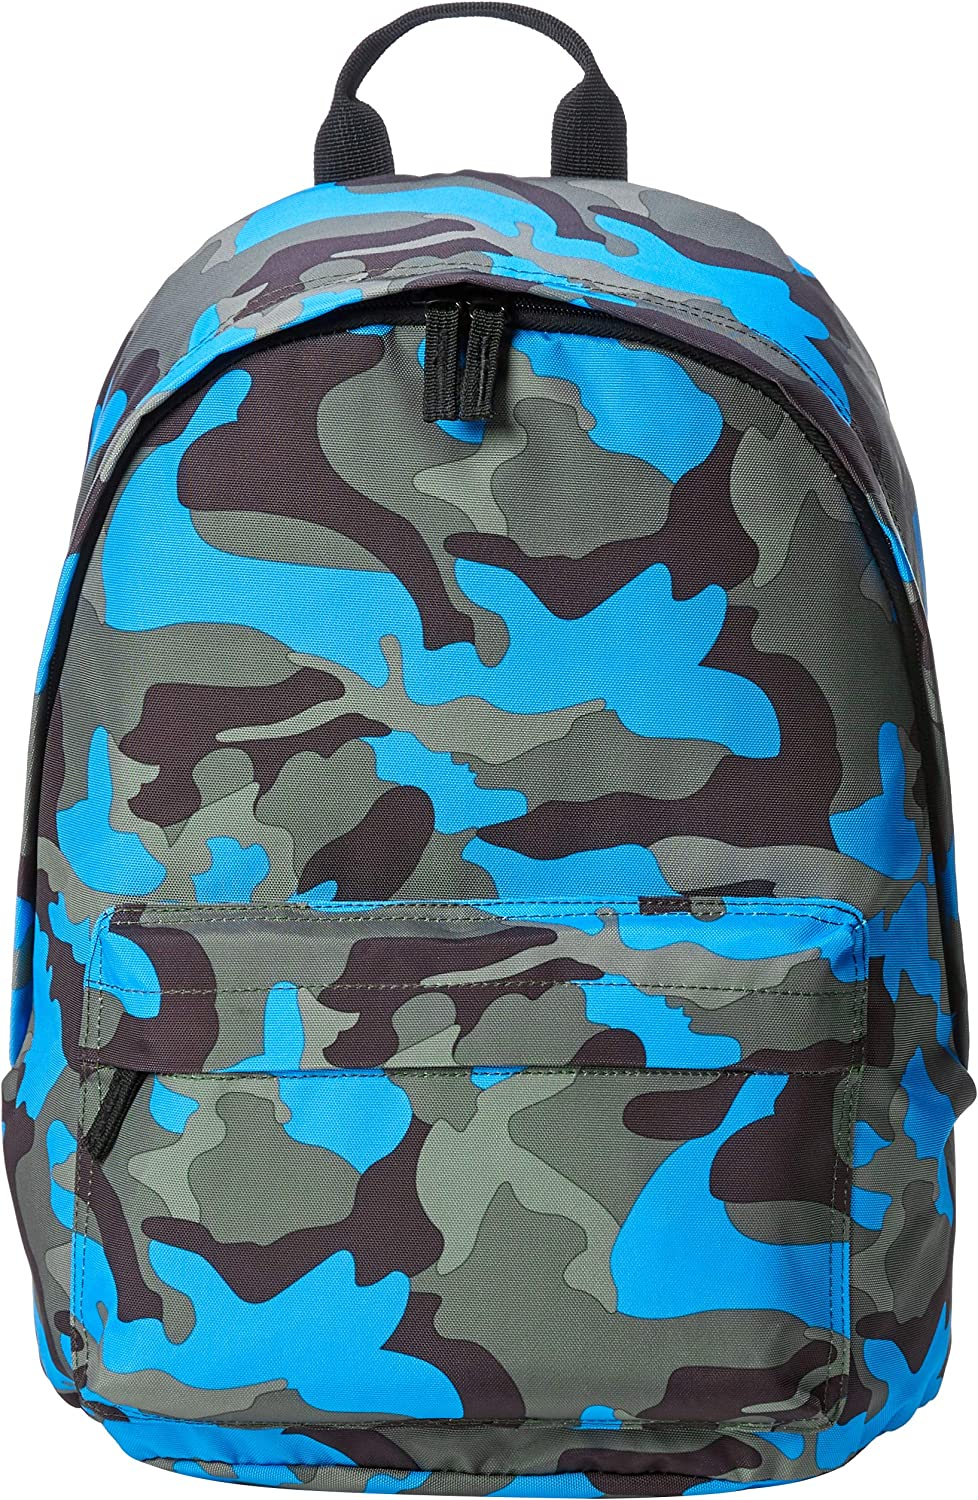 AmazonBasics Everyday School Laptop Backpack - Blue Camouflage